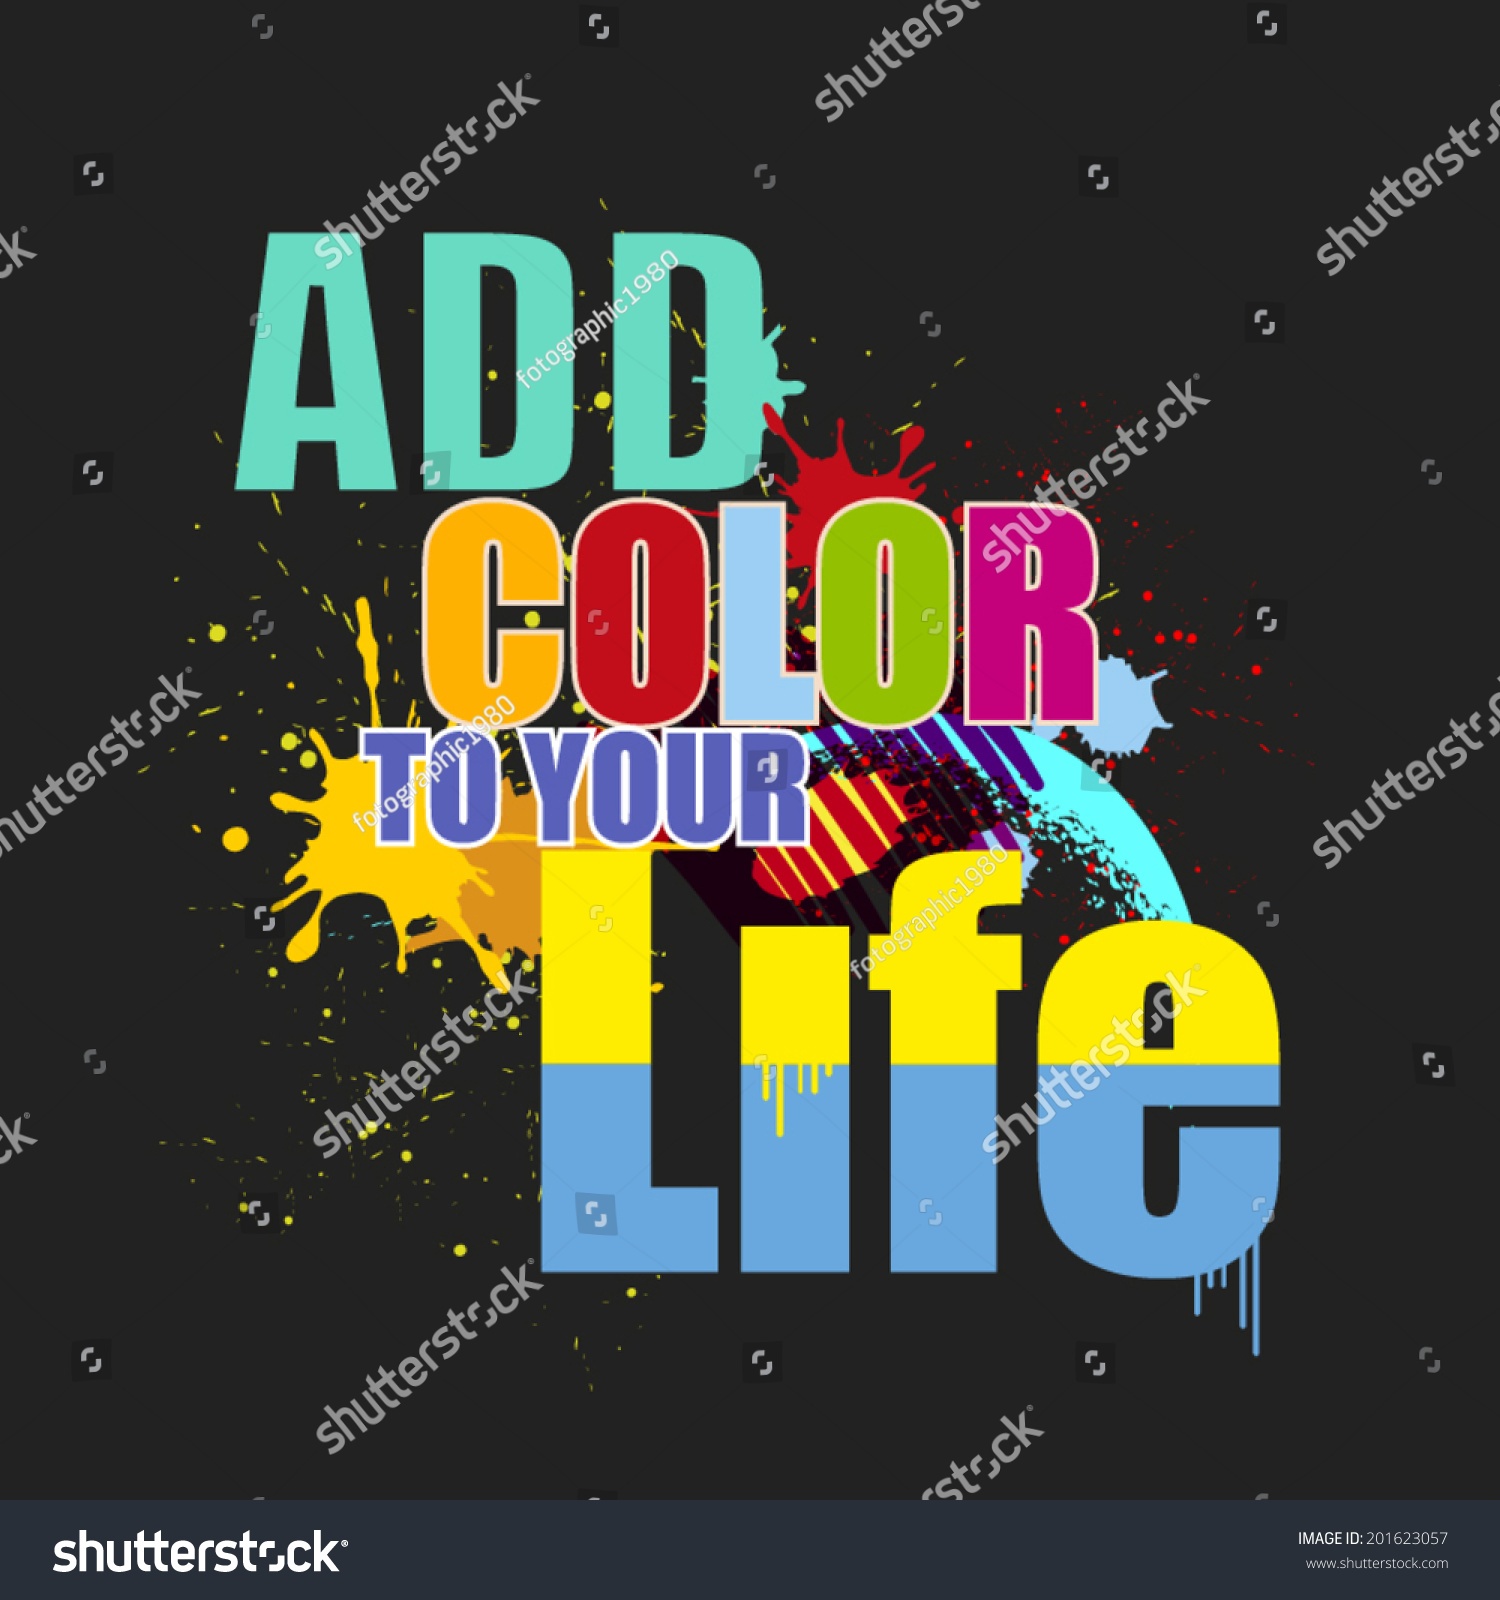 Color Your Life Quotes Inspiration Quote Background Design Add Color Stock Vector